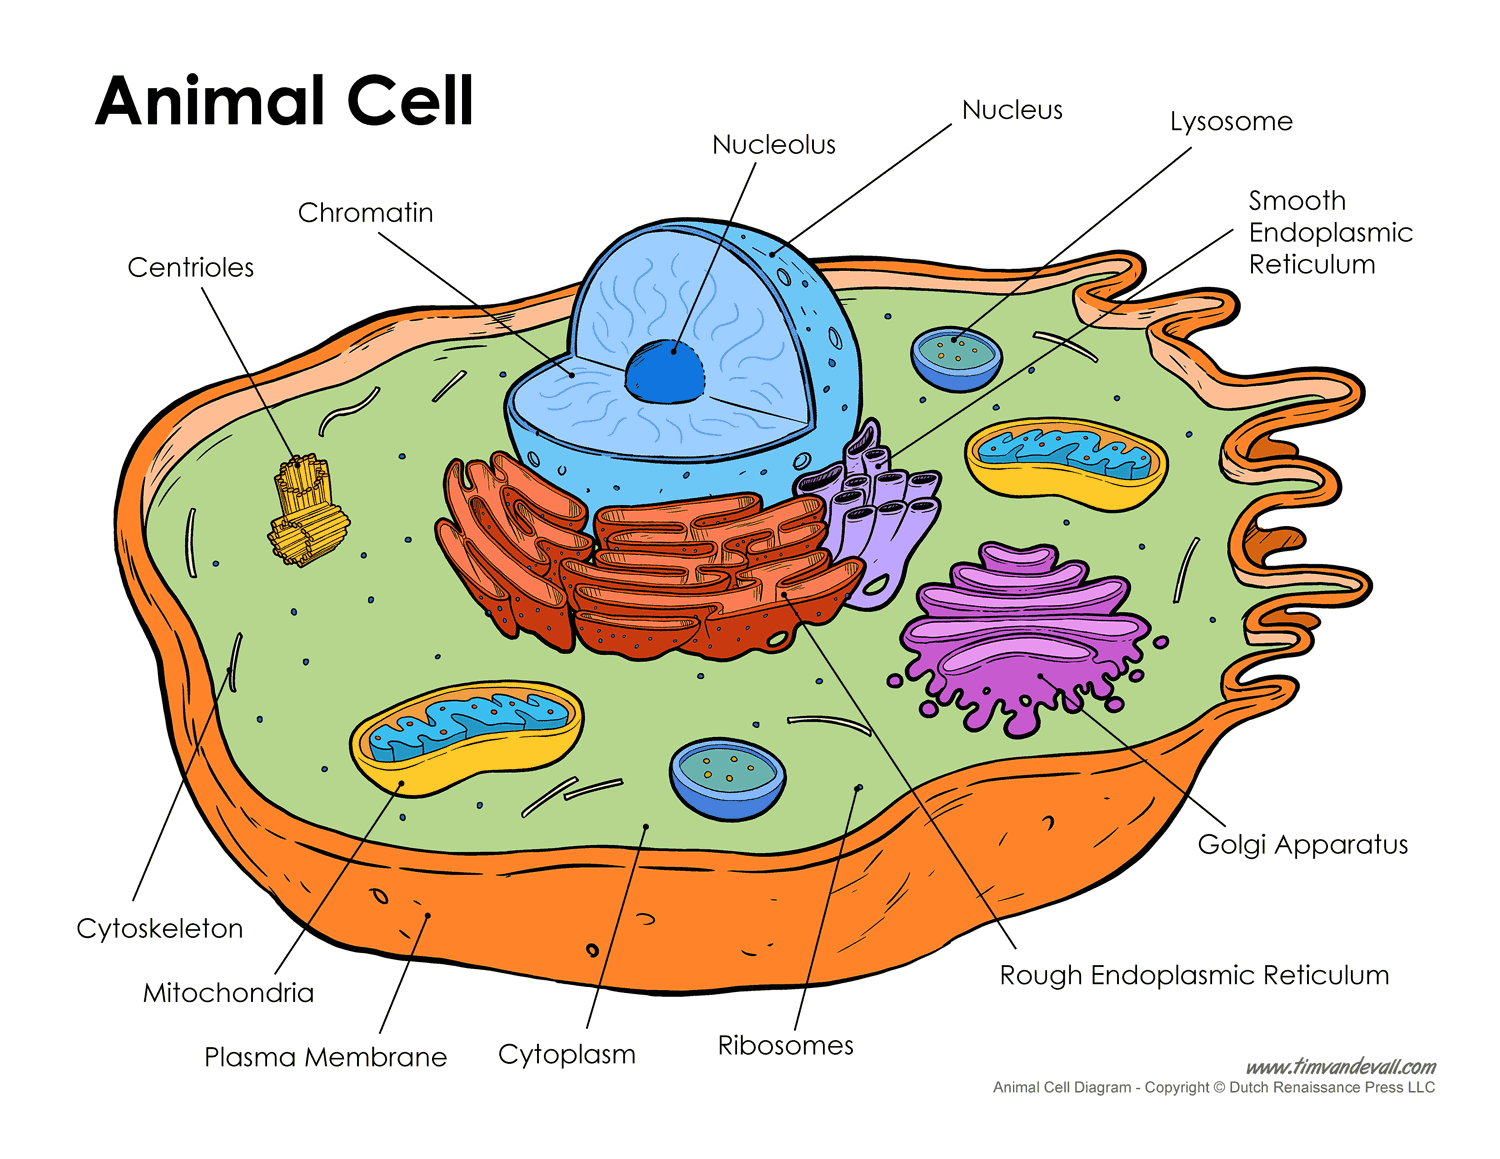 3d animal cell coloring diagram 1965 mustang steering column free unlabeled download clip art on printable labeled and blank